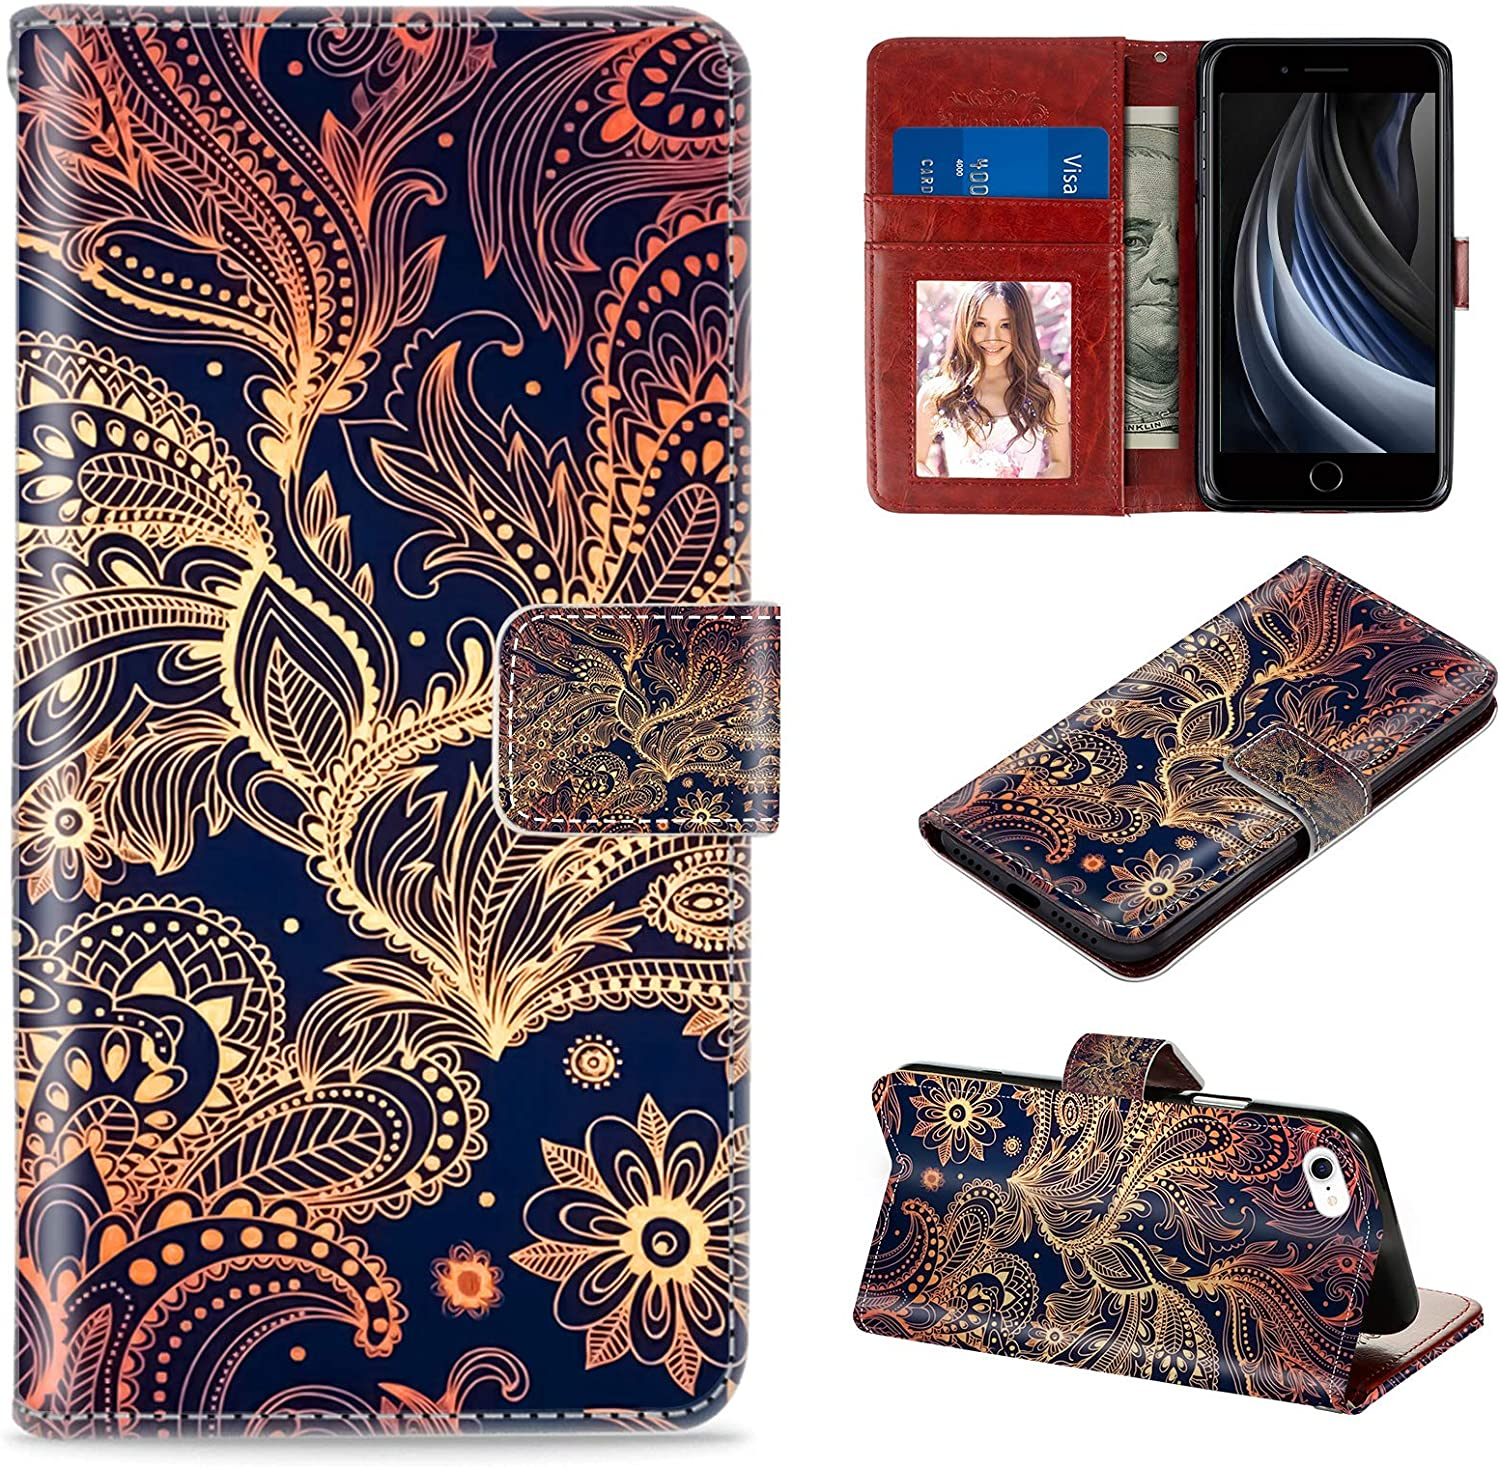 CASEHOME iPhone 7/8 /SE 2020 Wallet Case, Golden Phoenix Mandala Pattern PU Leather Flip Magnetic Cover Case with Card Slot and Stand Holder All-Round Protective Case Compatible with iPhone 7/8/SE2.